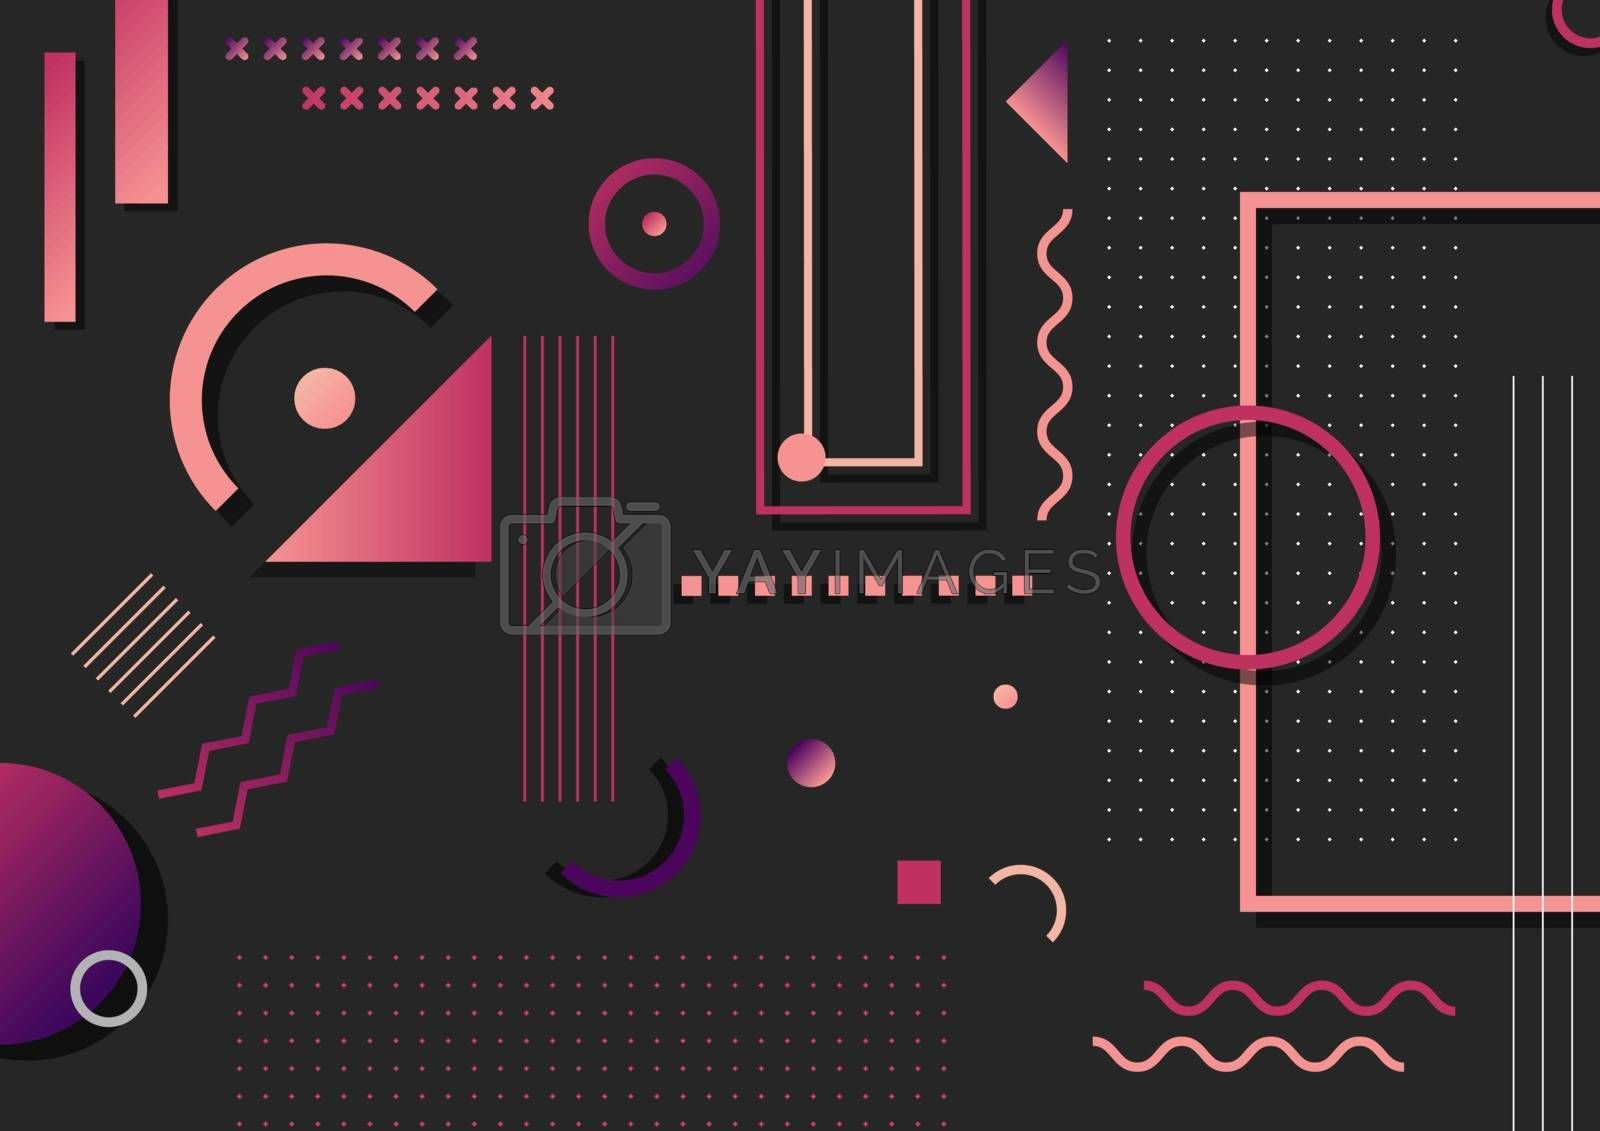 Abstract trendy pink and purple geometric shape elements pattern on black background. You can use for poster, artwork, template design, brochure. Vector illustration